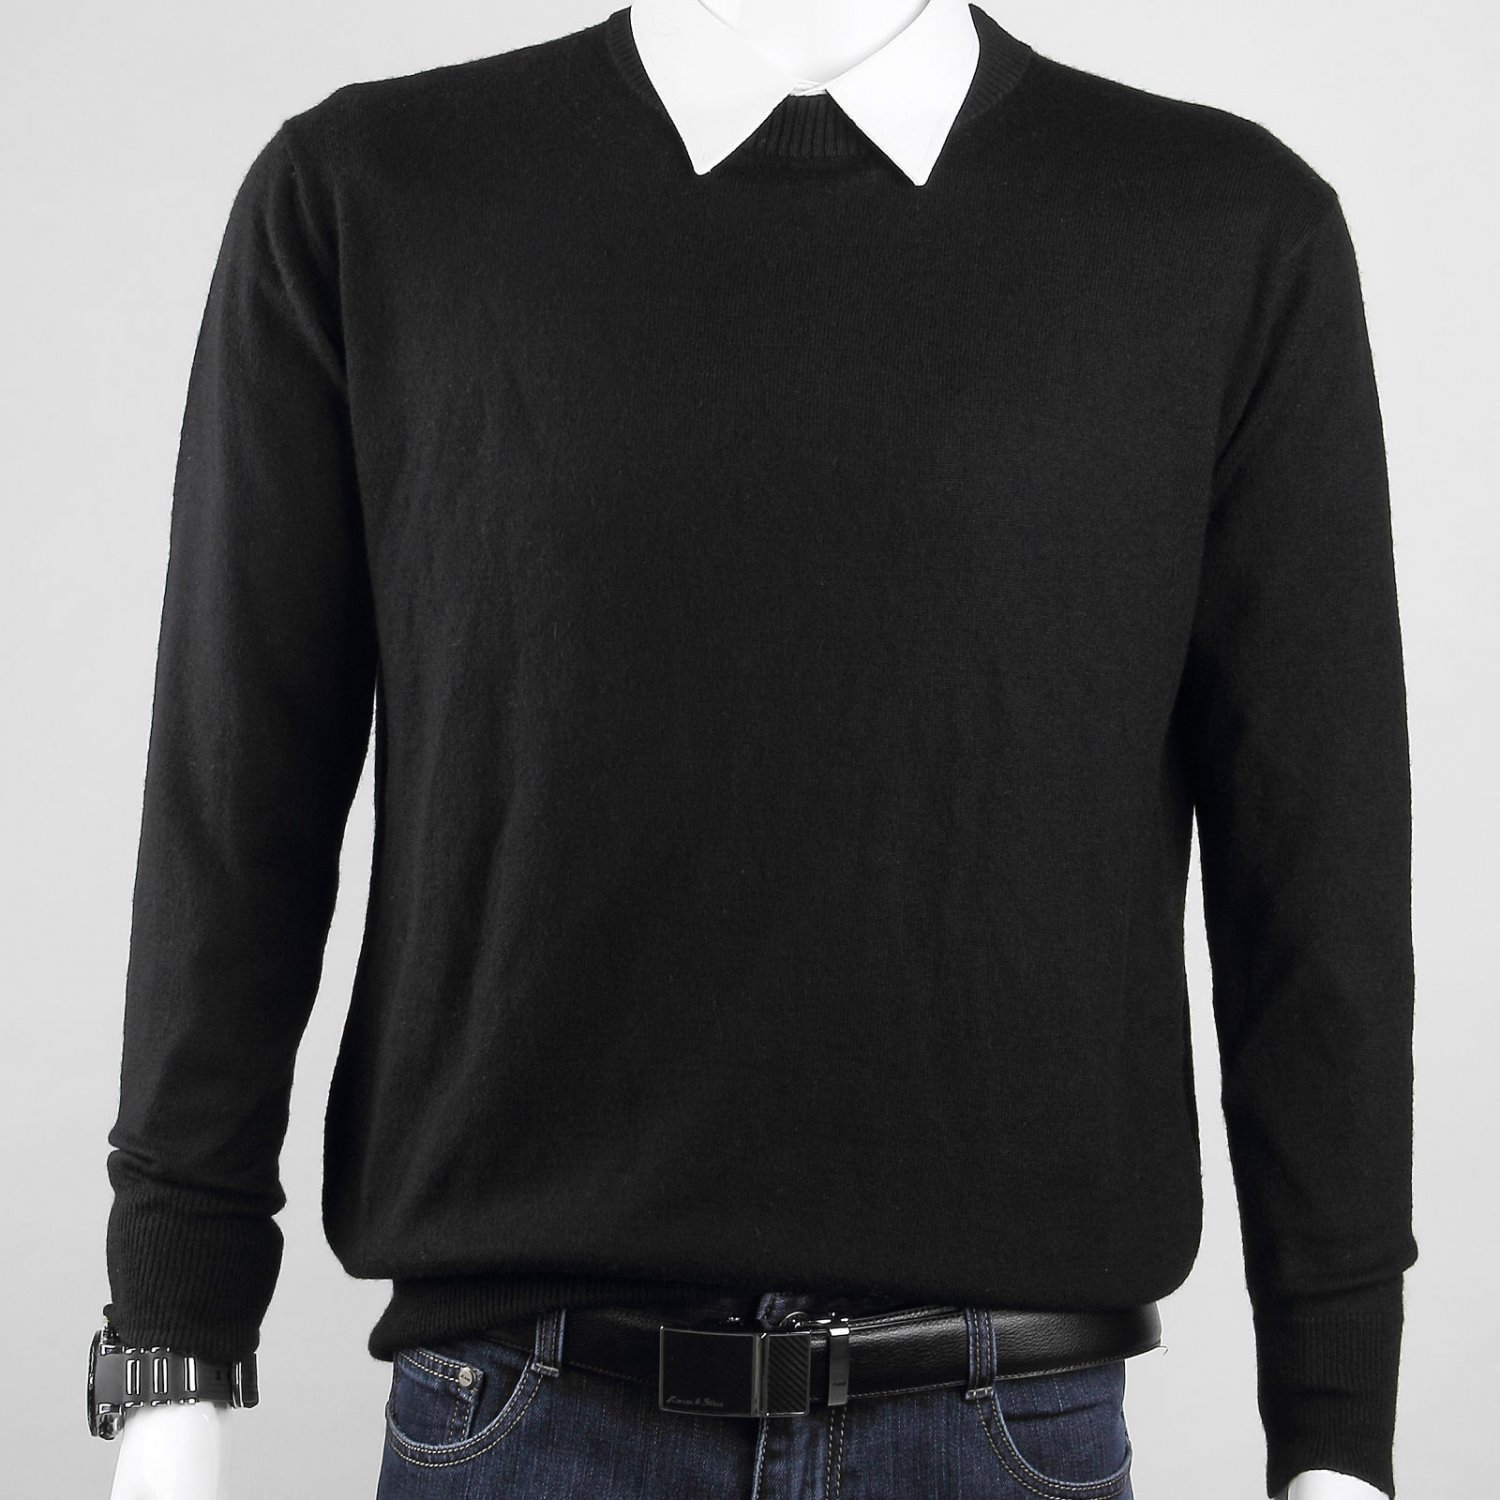 New Medium Men�s Lightweight Cashmere Crewneck Sweater